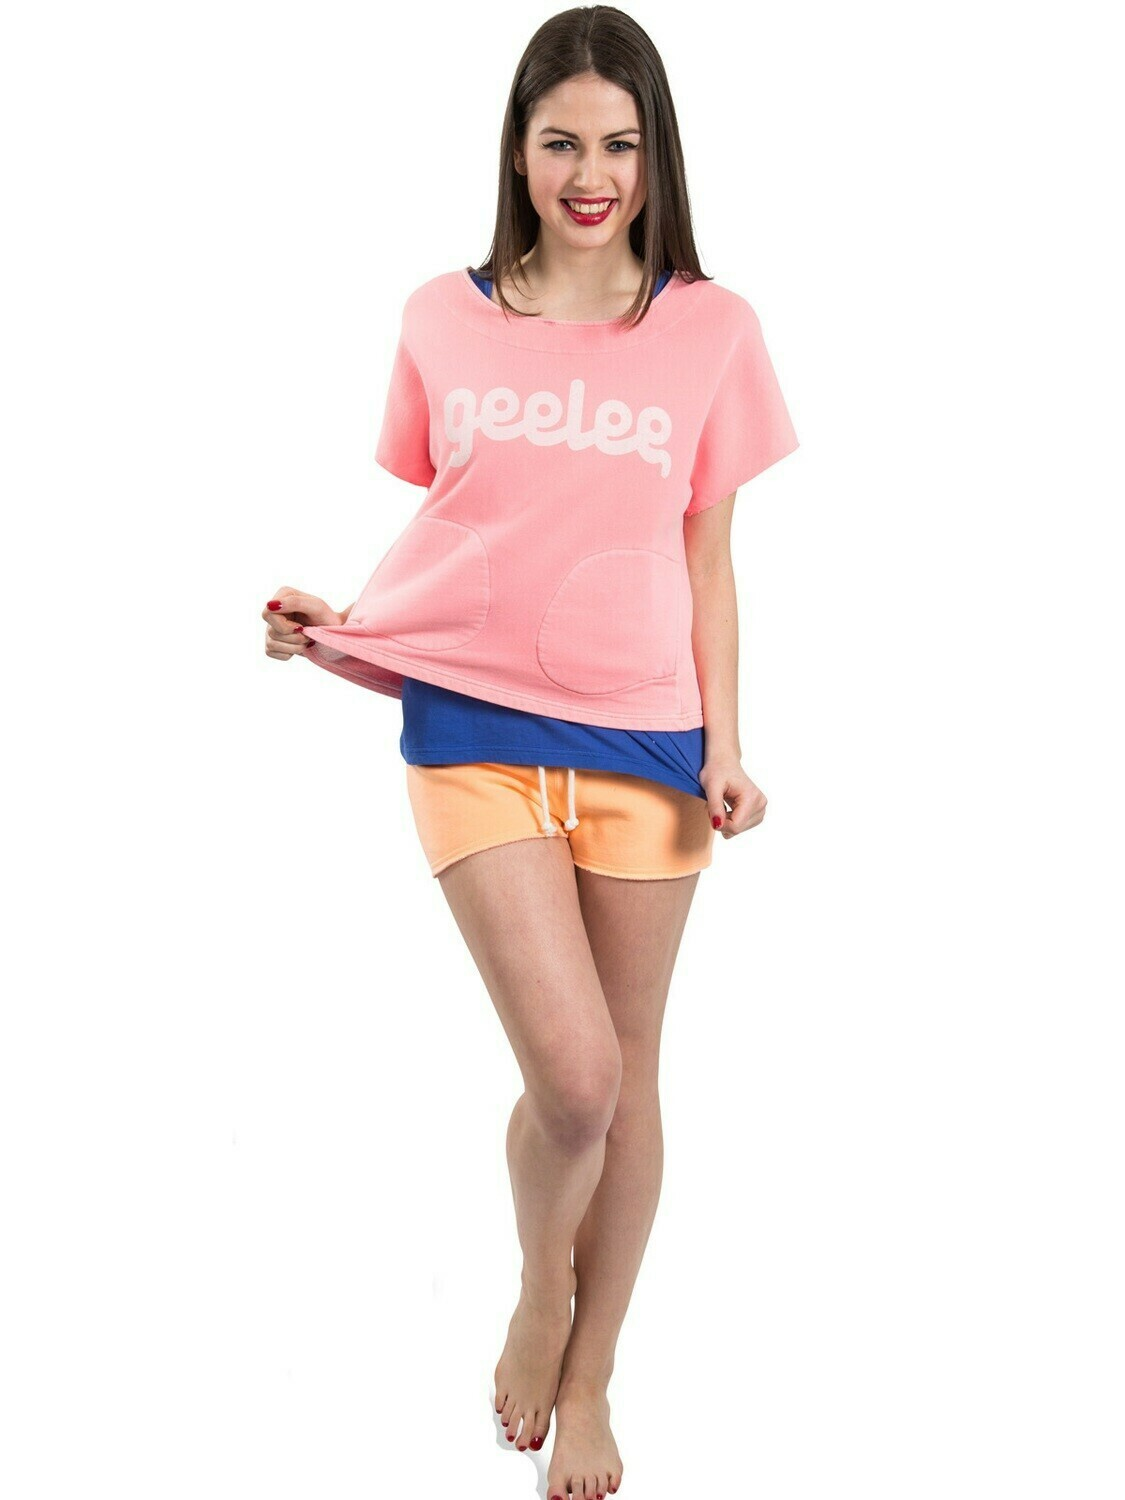 Geelee Cropped Damen Sweatshirt